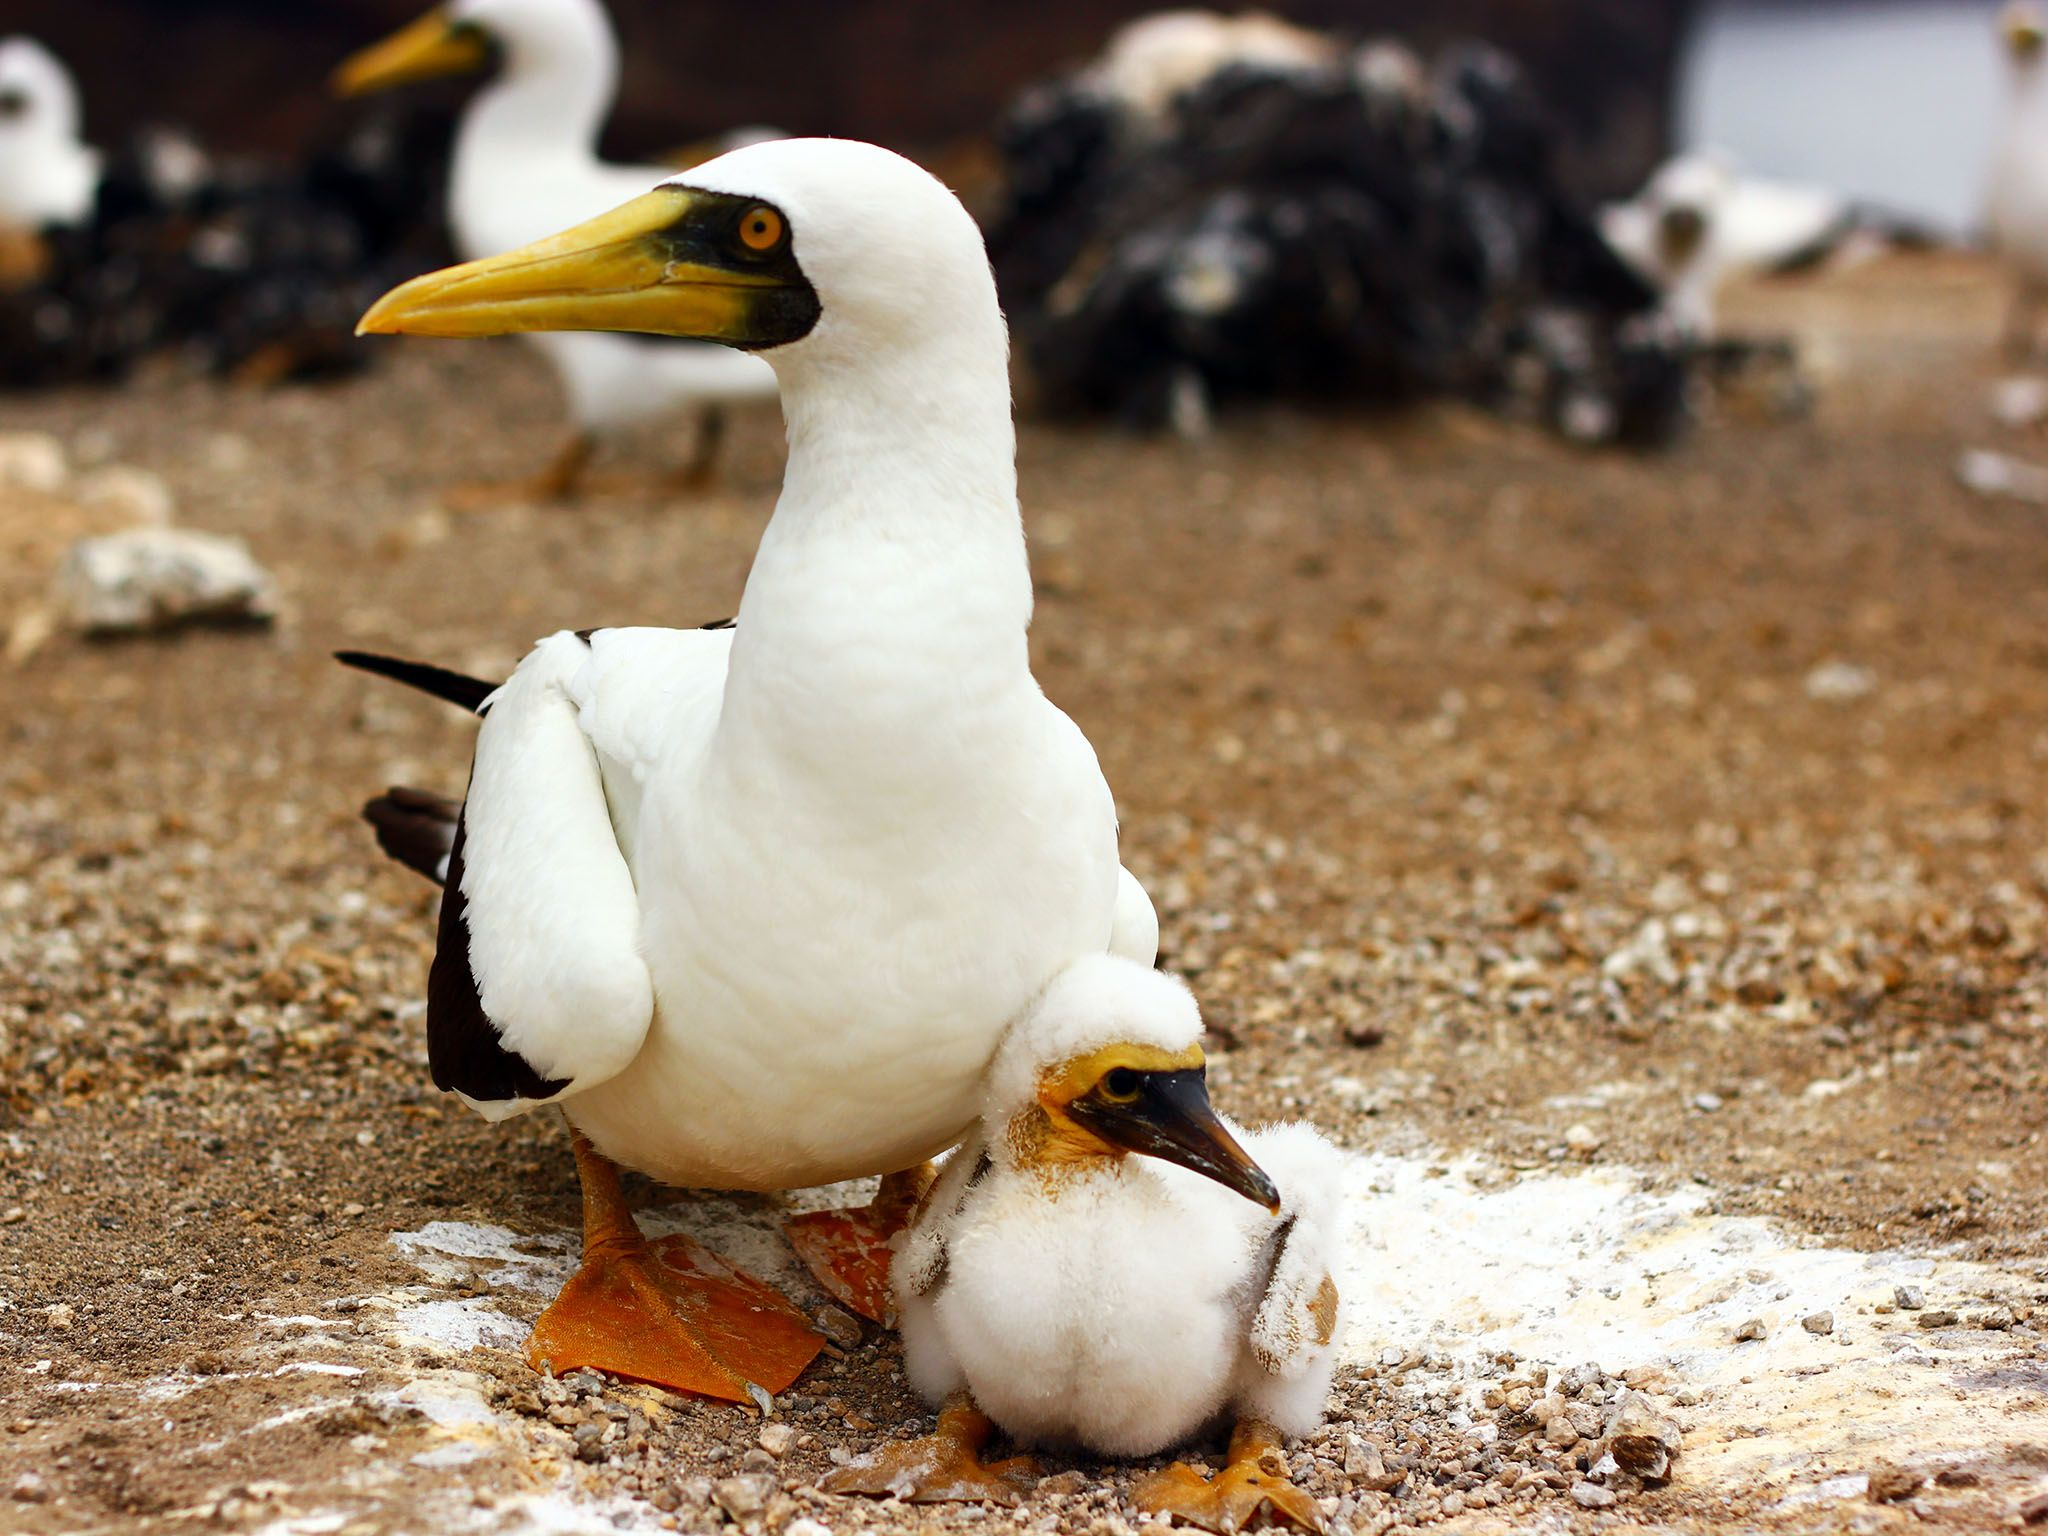 Boatswain Bird Island, Ascension Island: Masked Booby with its chick, amidst rocks - others... [Photo of the day - October 2015]